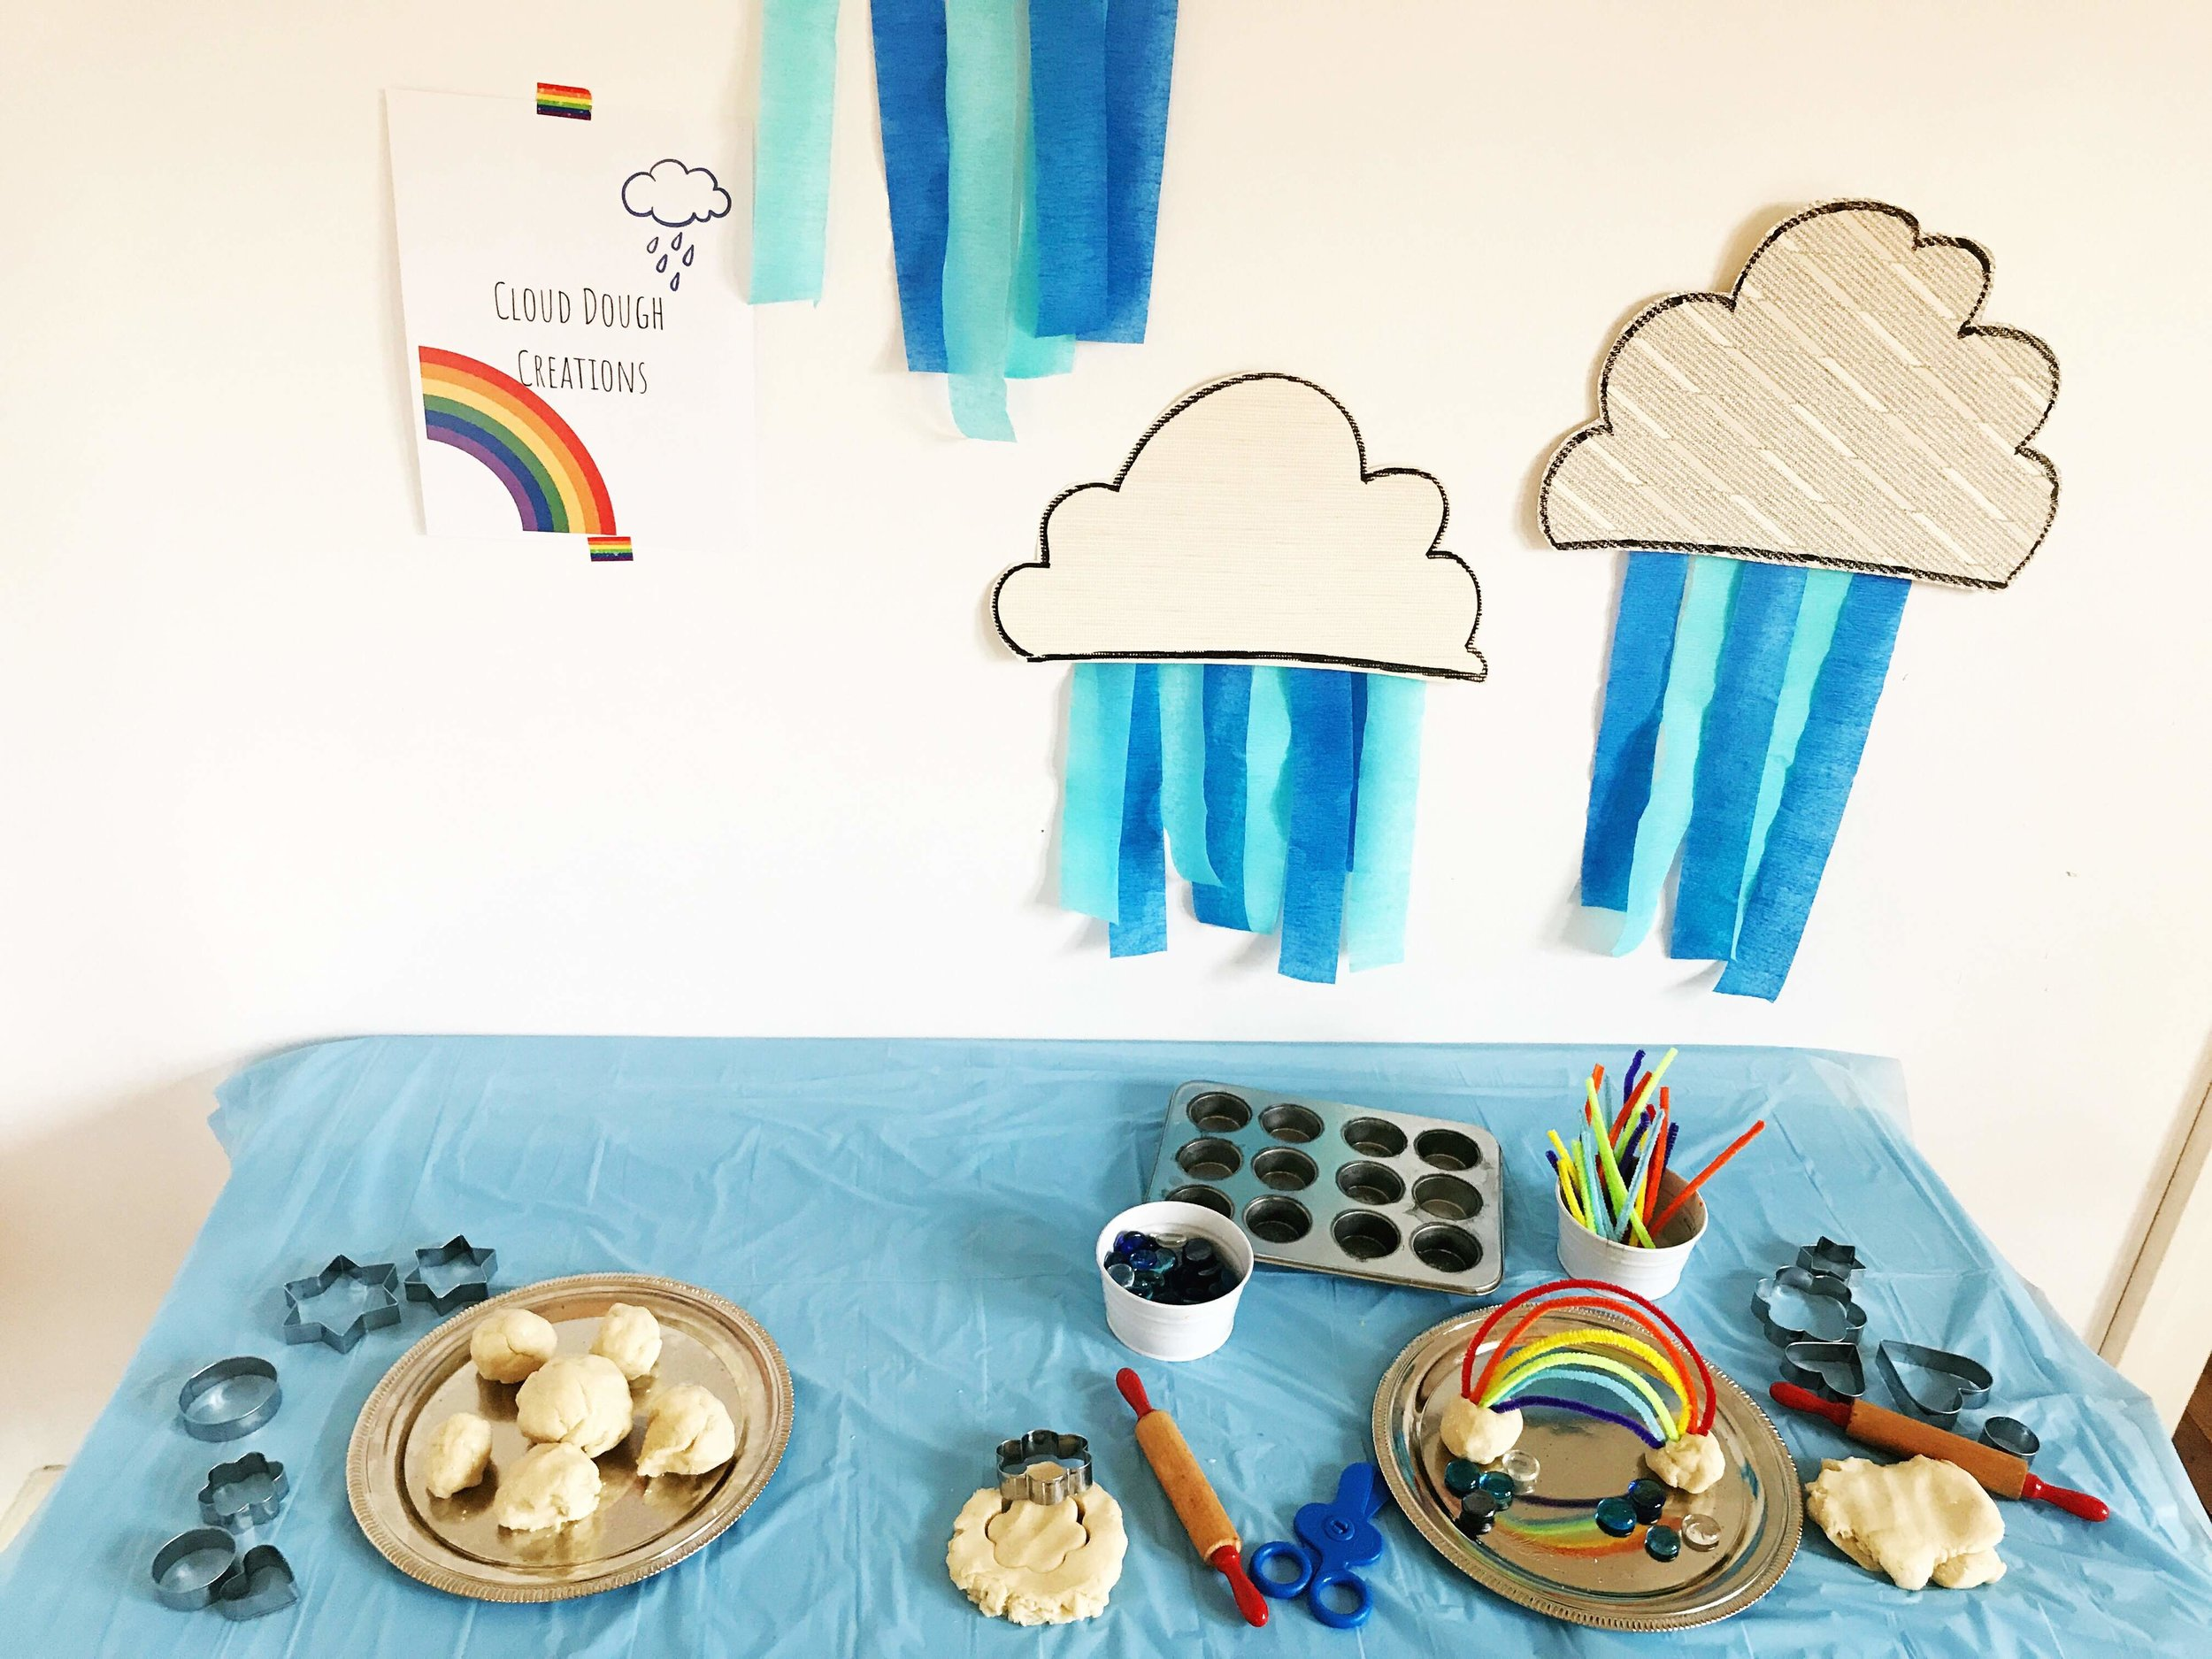 Cloud Dough Creation Station